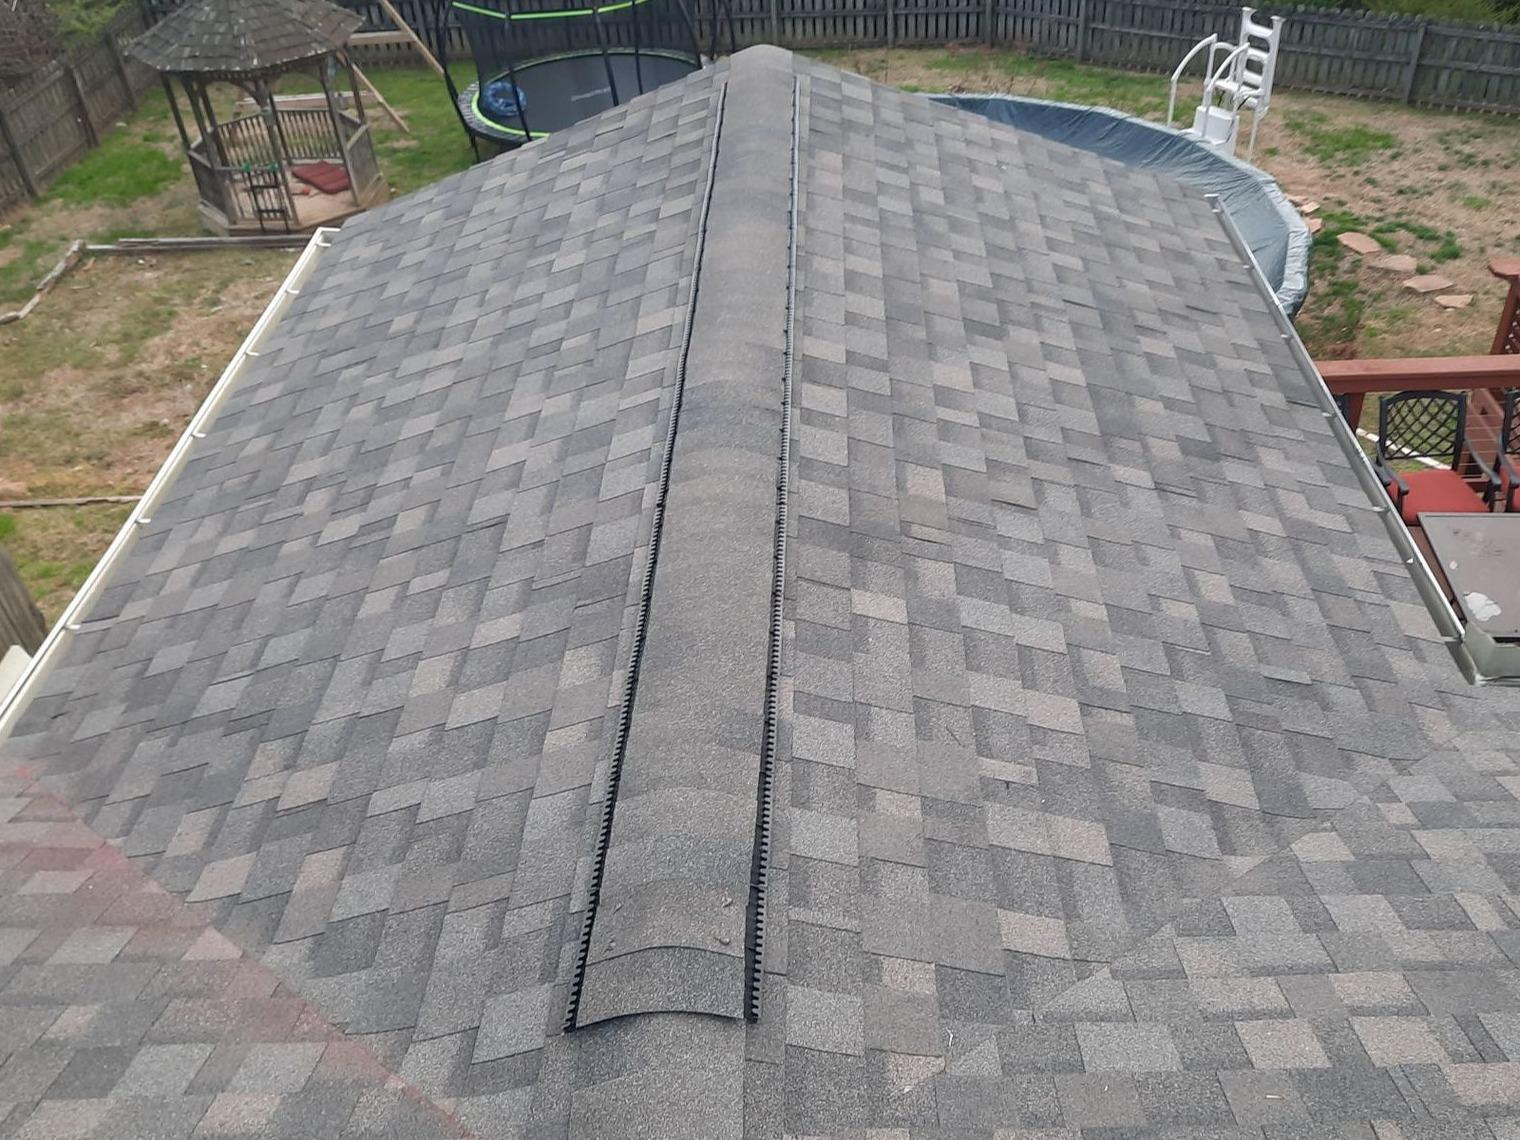 Roof Replacement Near Blaine, TN - After Photo